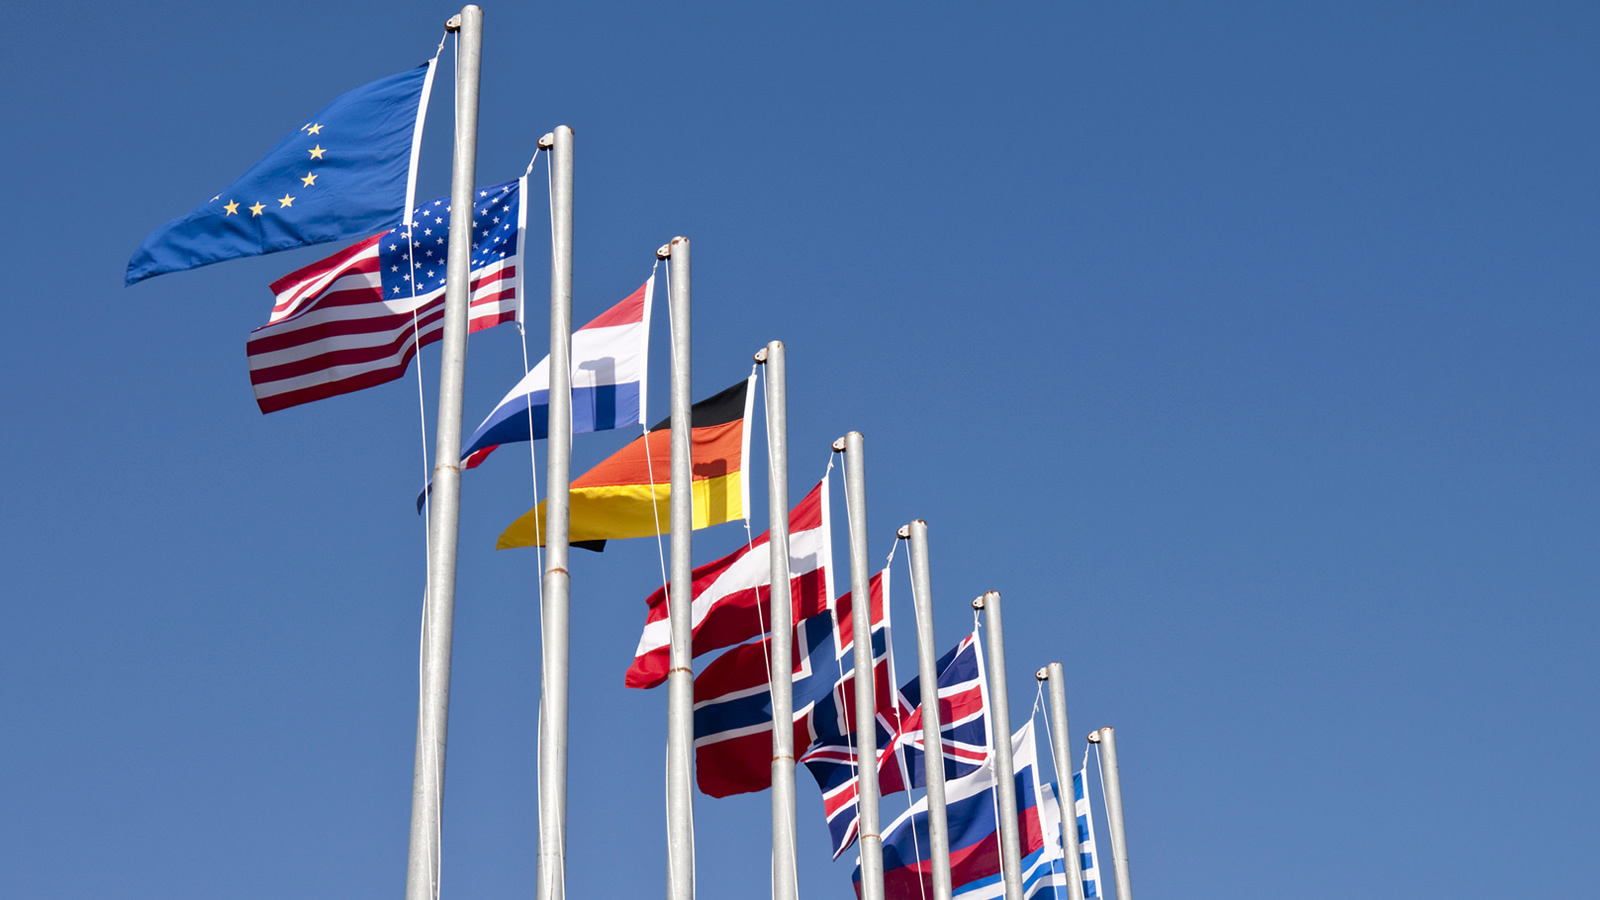 Flags of the European Union, United States, and Other European Nations